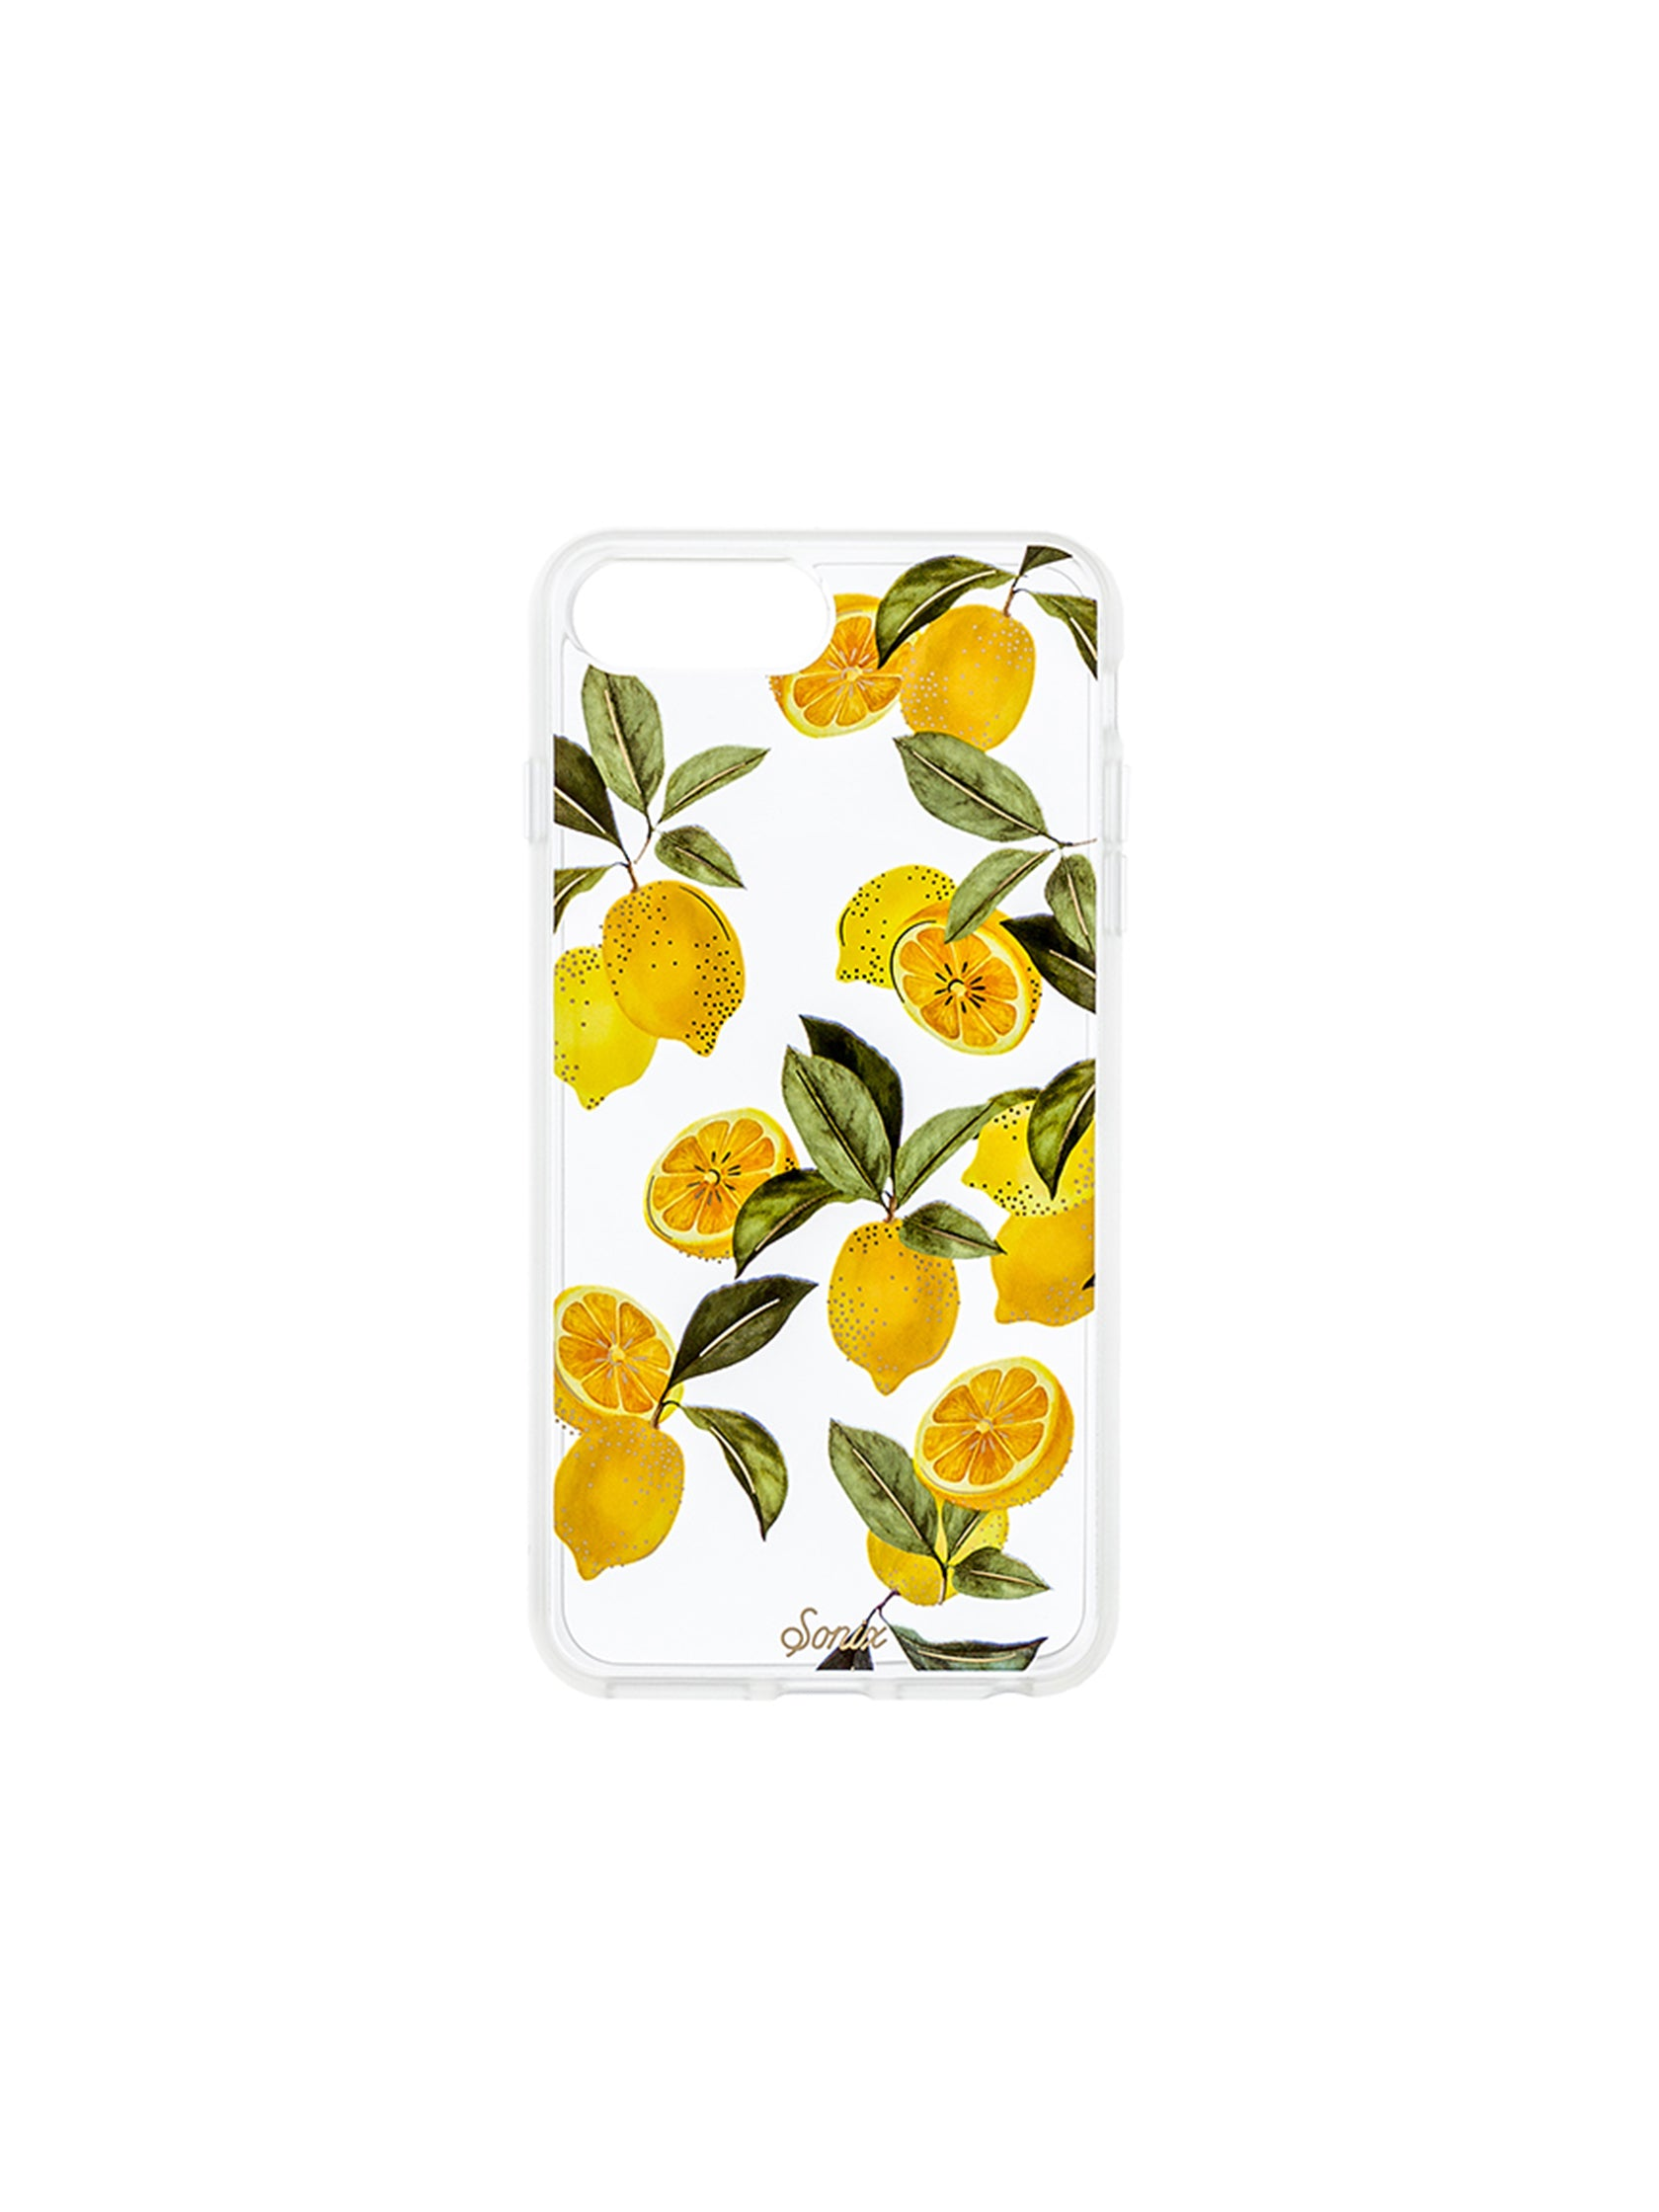 Women outfit in a phone case rental from Sonix called Lemon Zest Iphone Case